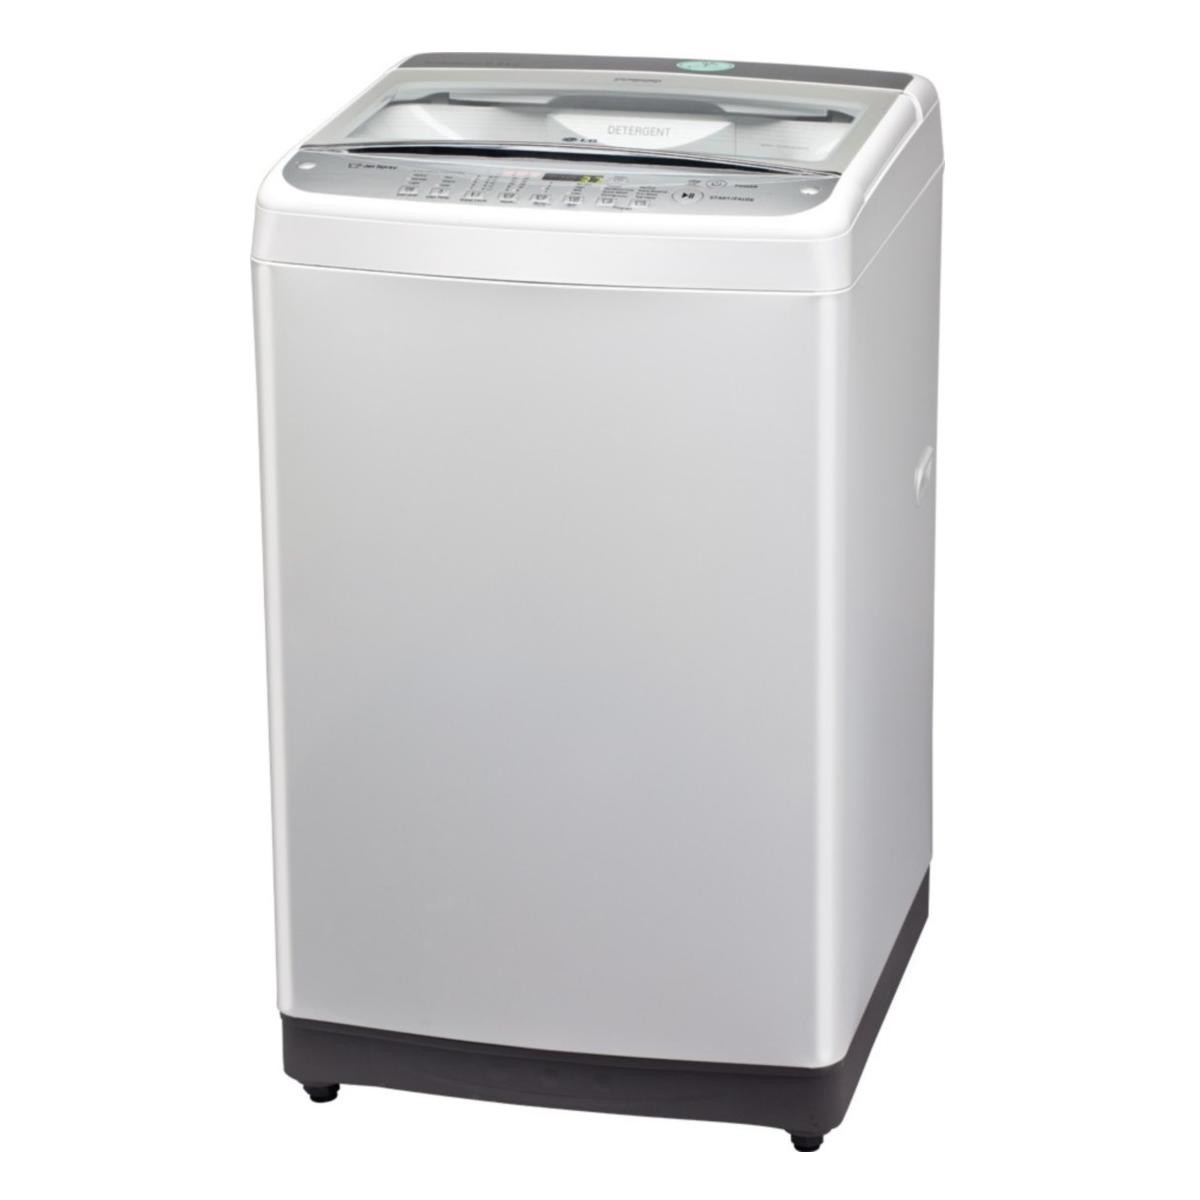 LG T7568TEEL 6 5 Kg Fully Automatic Top Loading Washing Machine